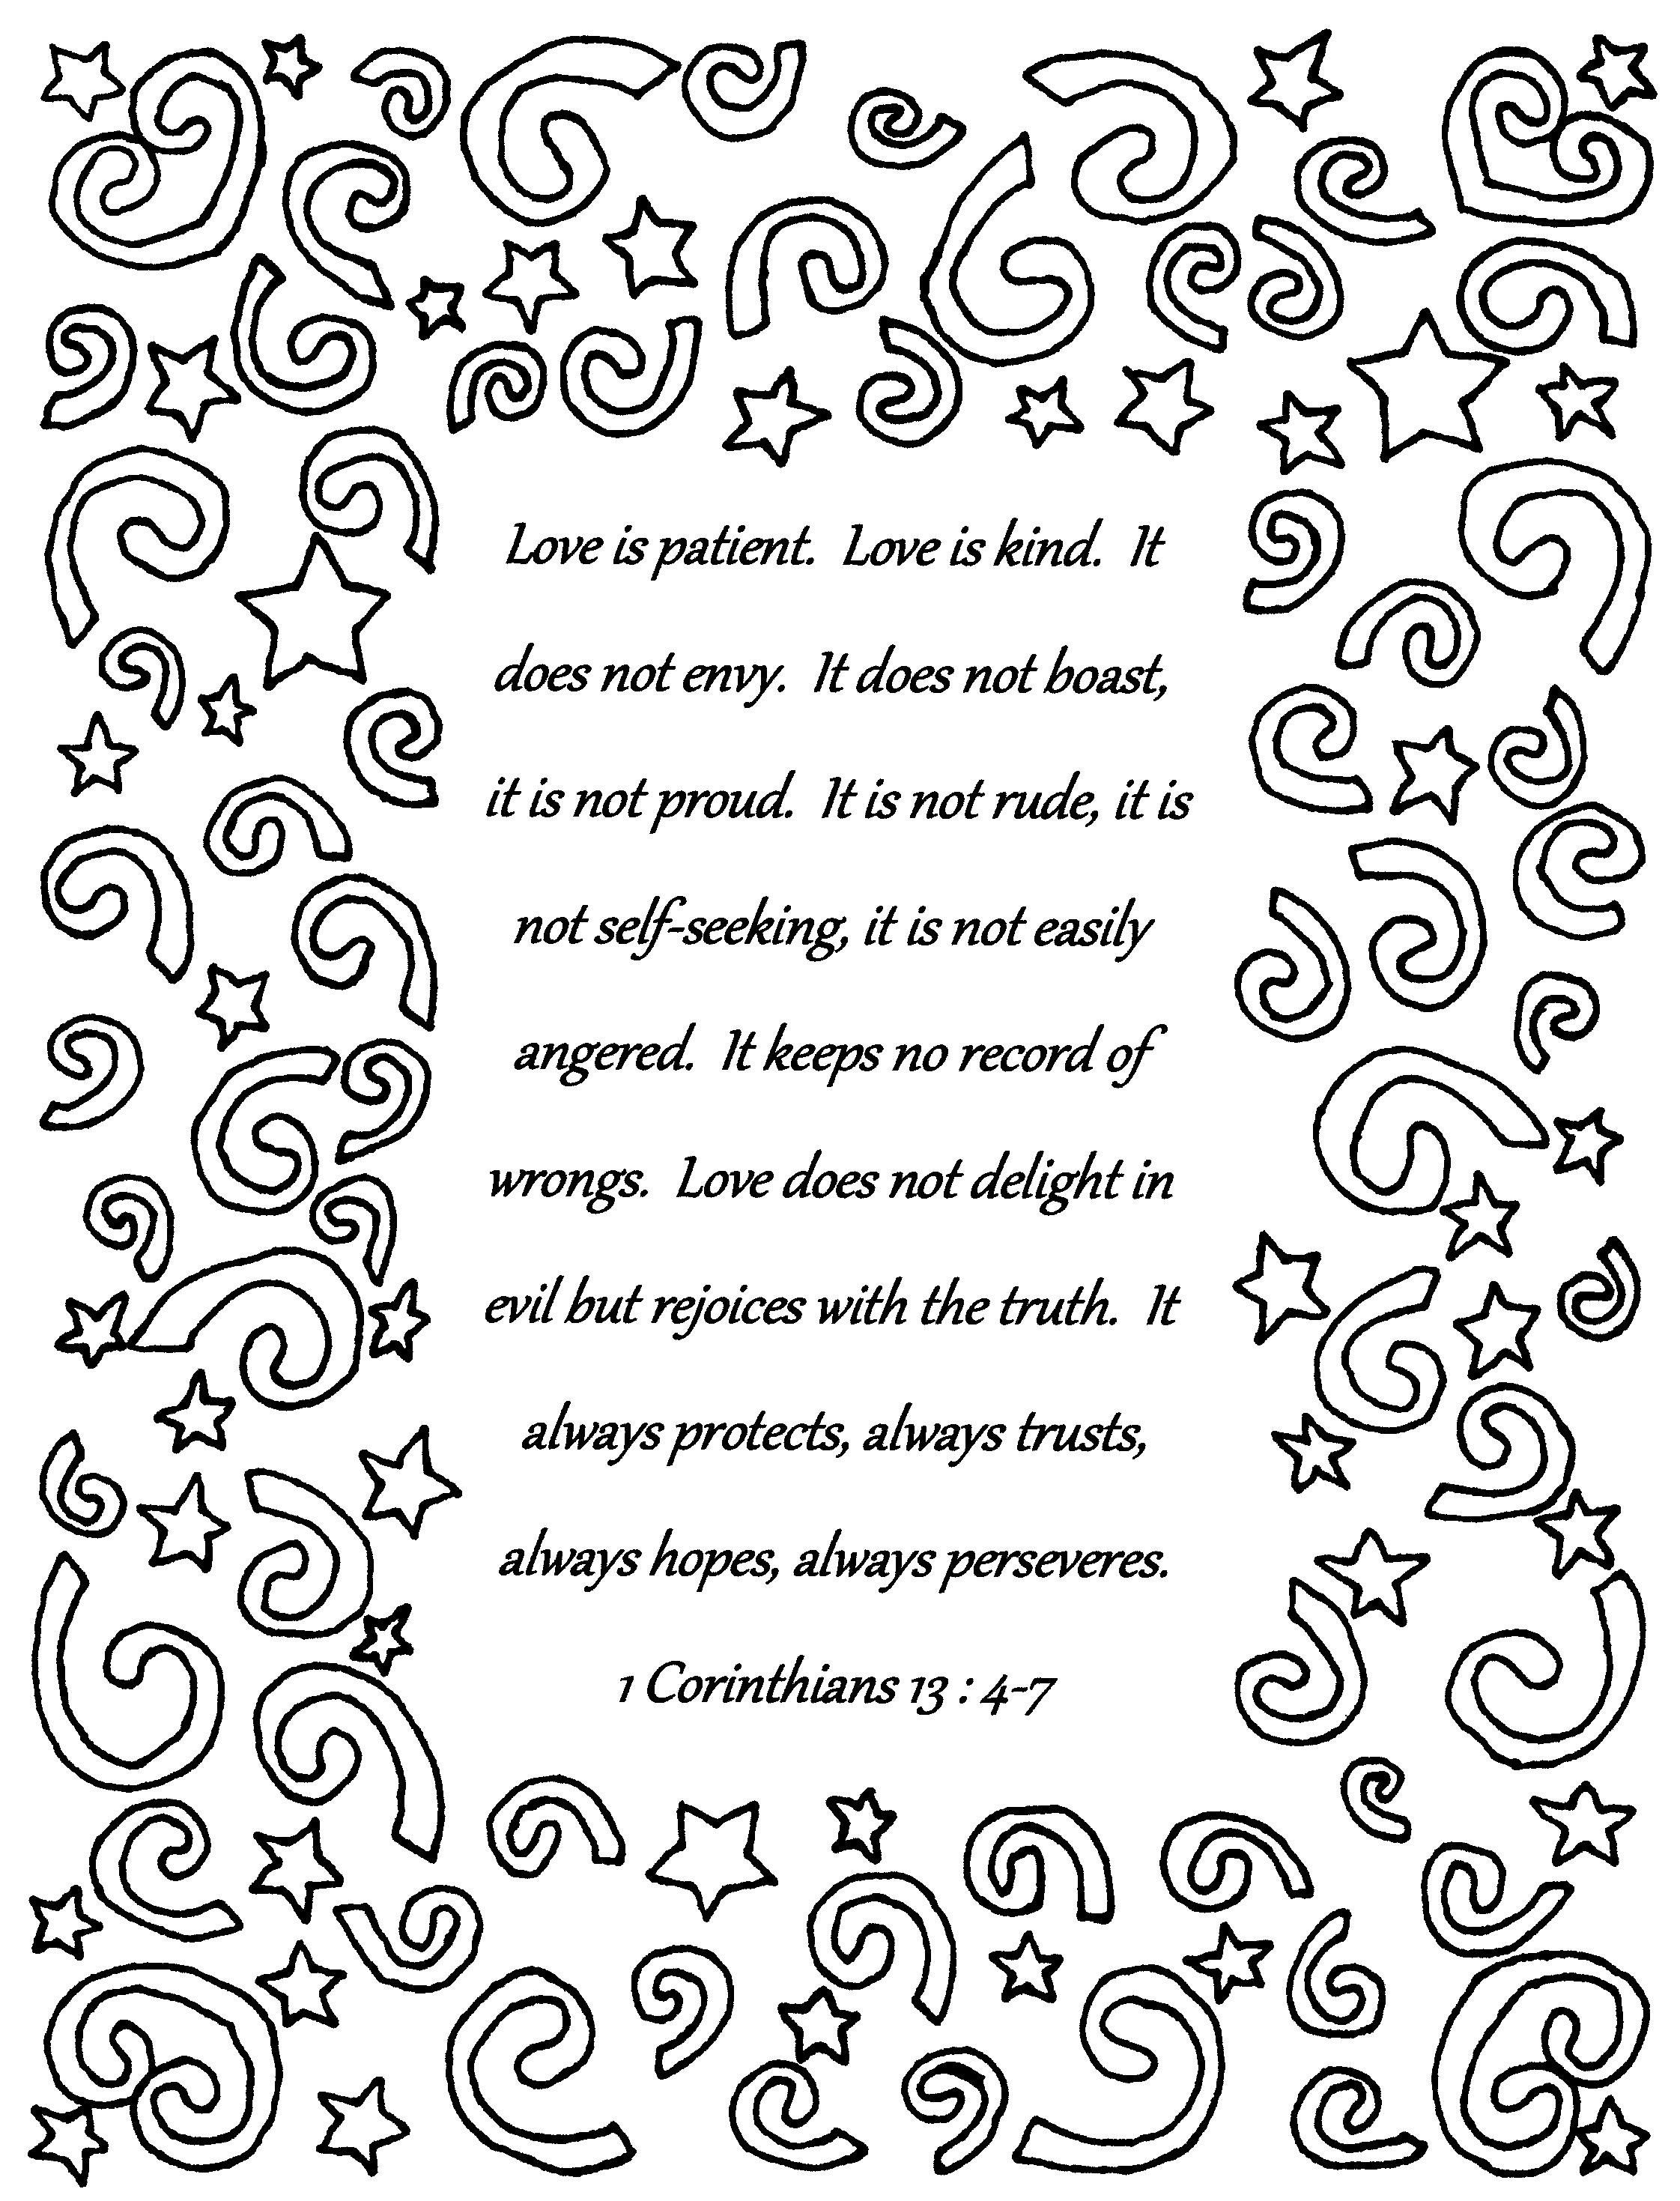 Love Is Patient 1 Corinthians 13 4 7 Bible Verse